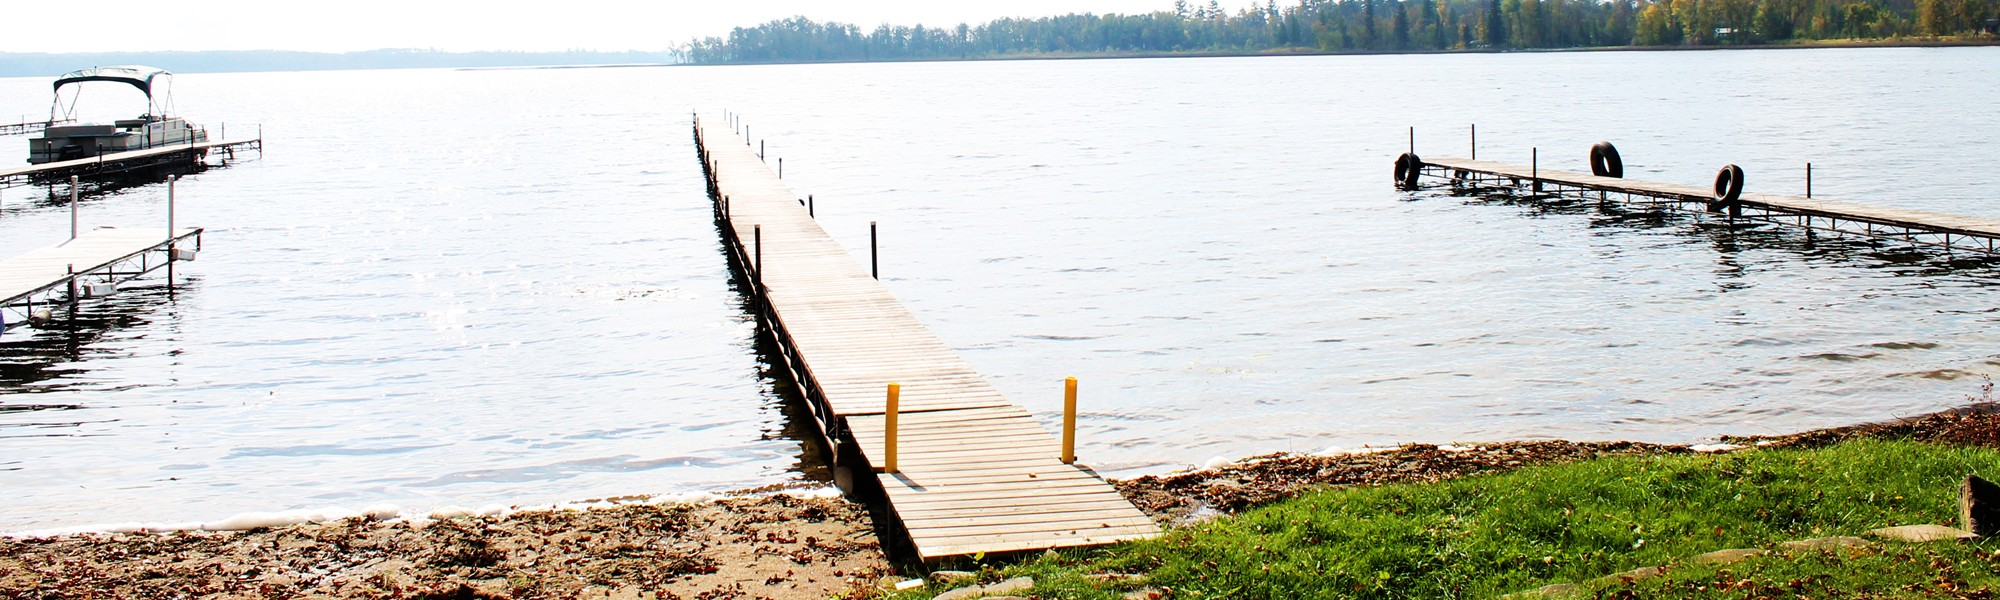 Docks on Lake Shore